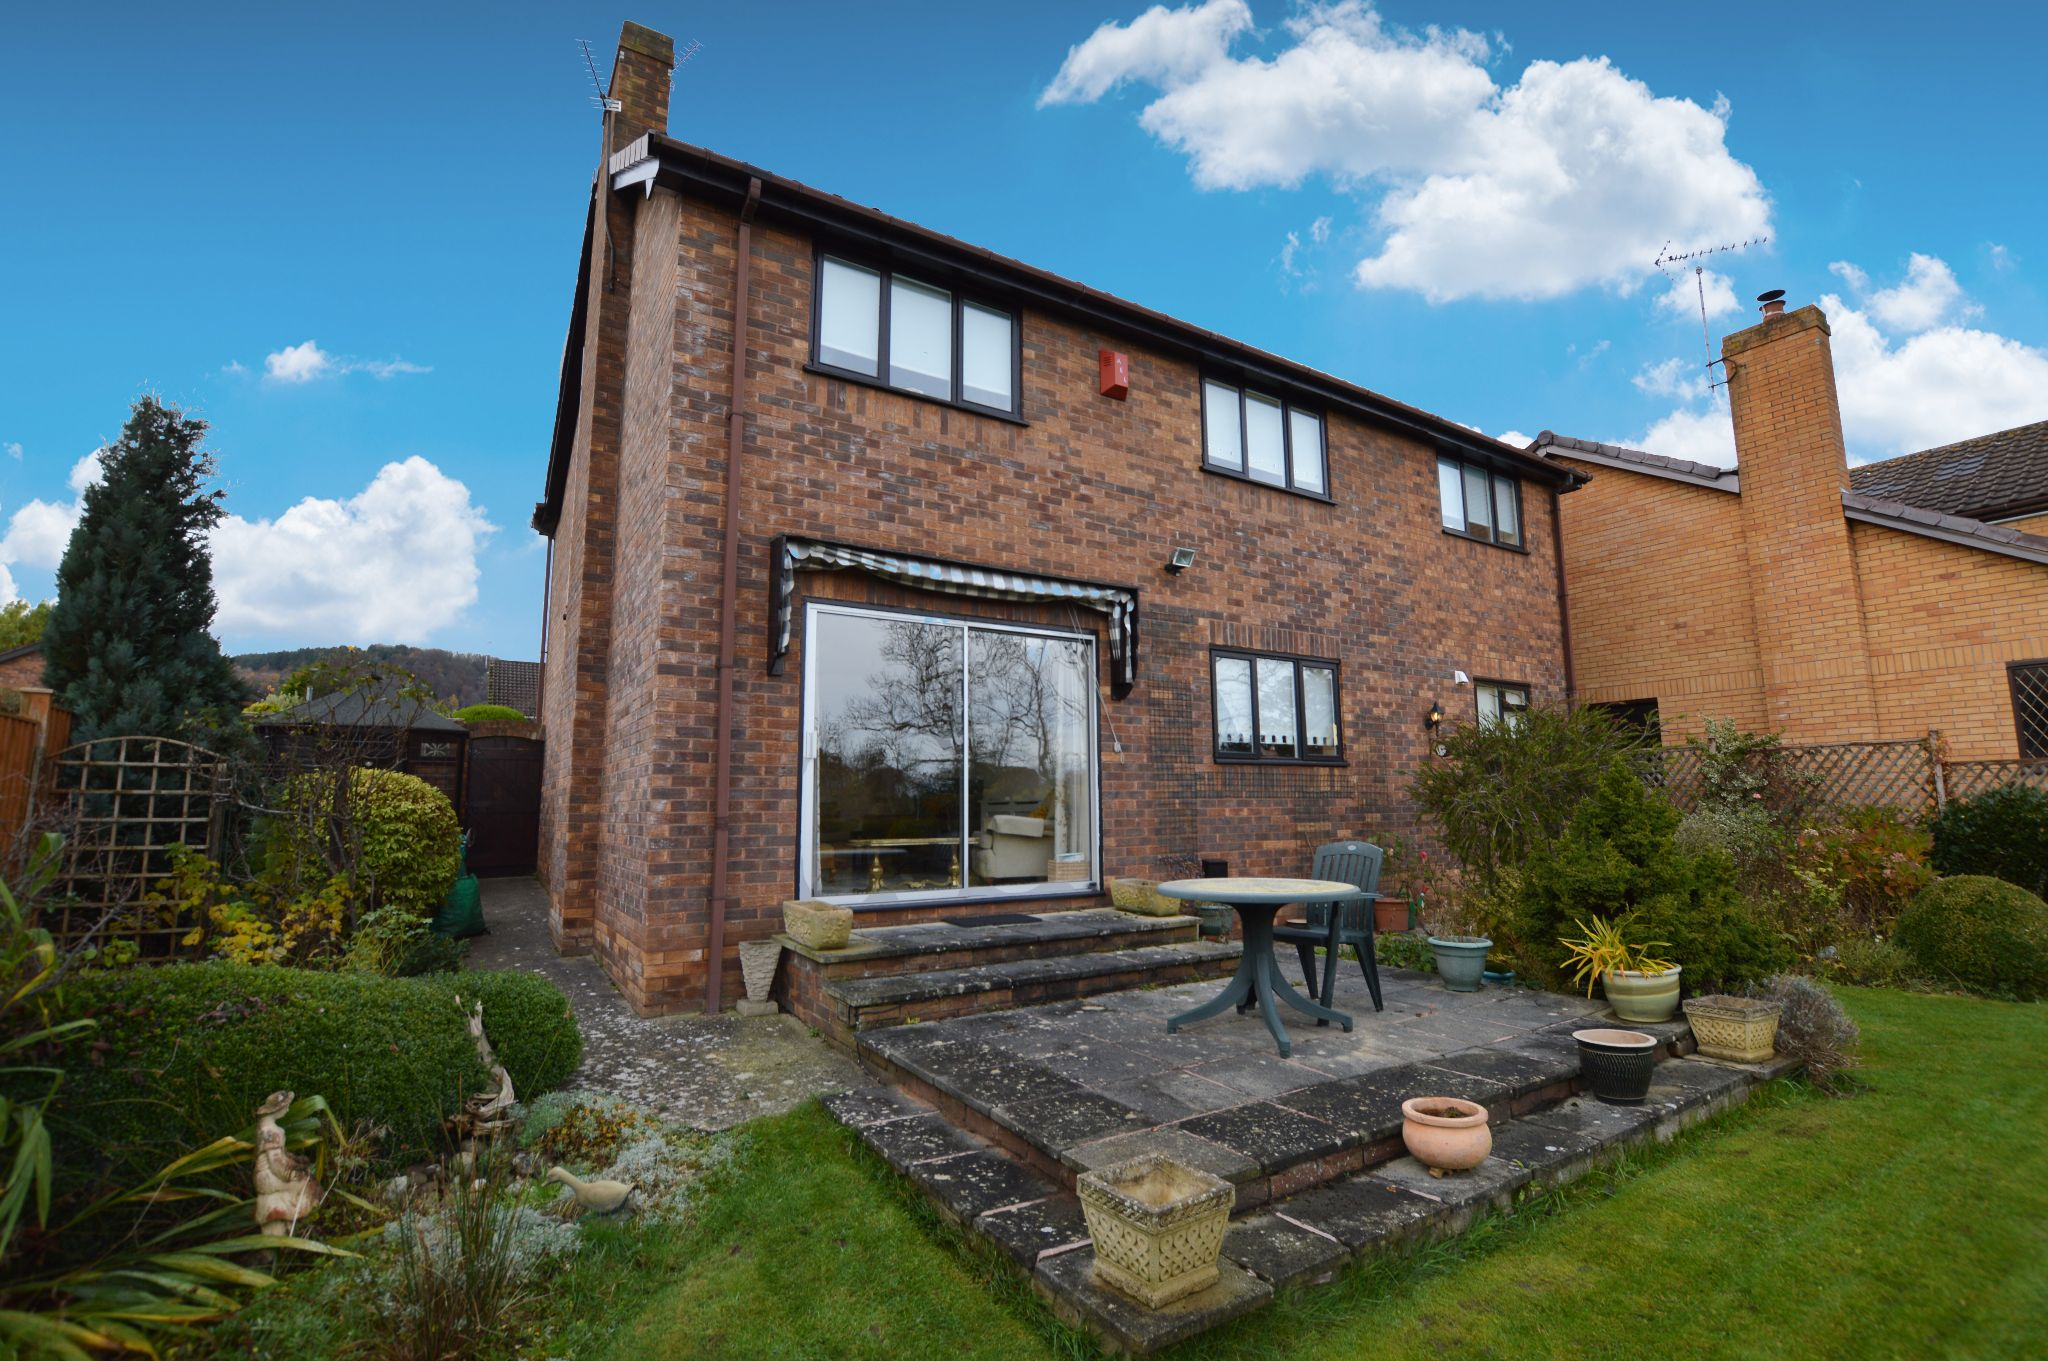 4 bedroom detached house For Sale in Abergele - Rear Aspect